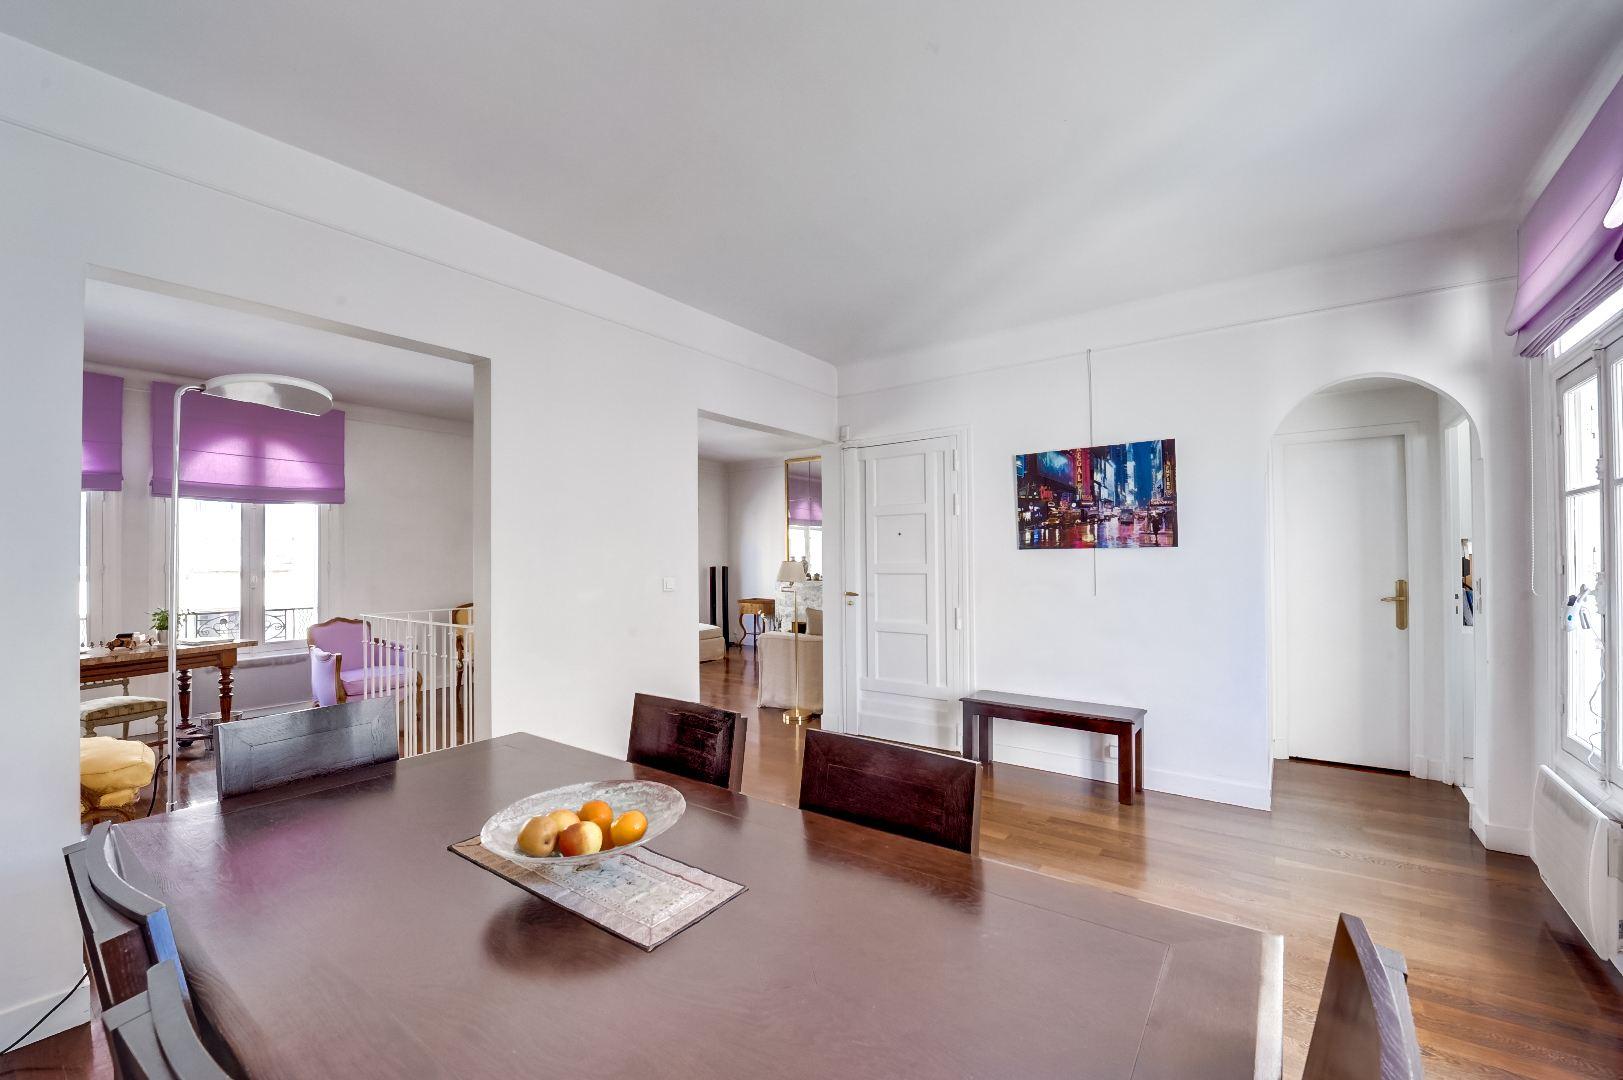 sales property at A 5 rooms apartment for sale, Neuilly - Saint James, 3 bedrooms